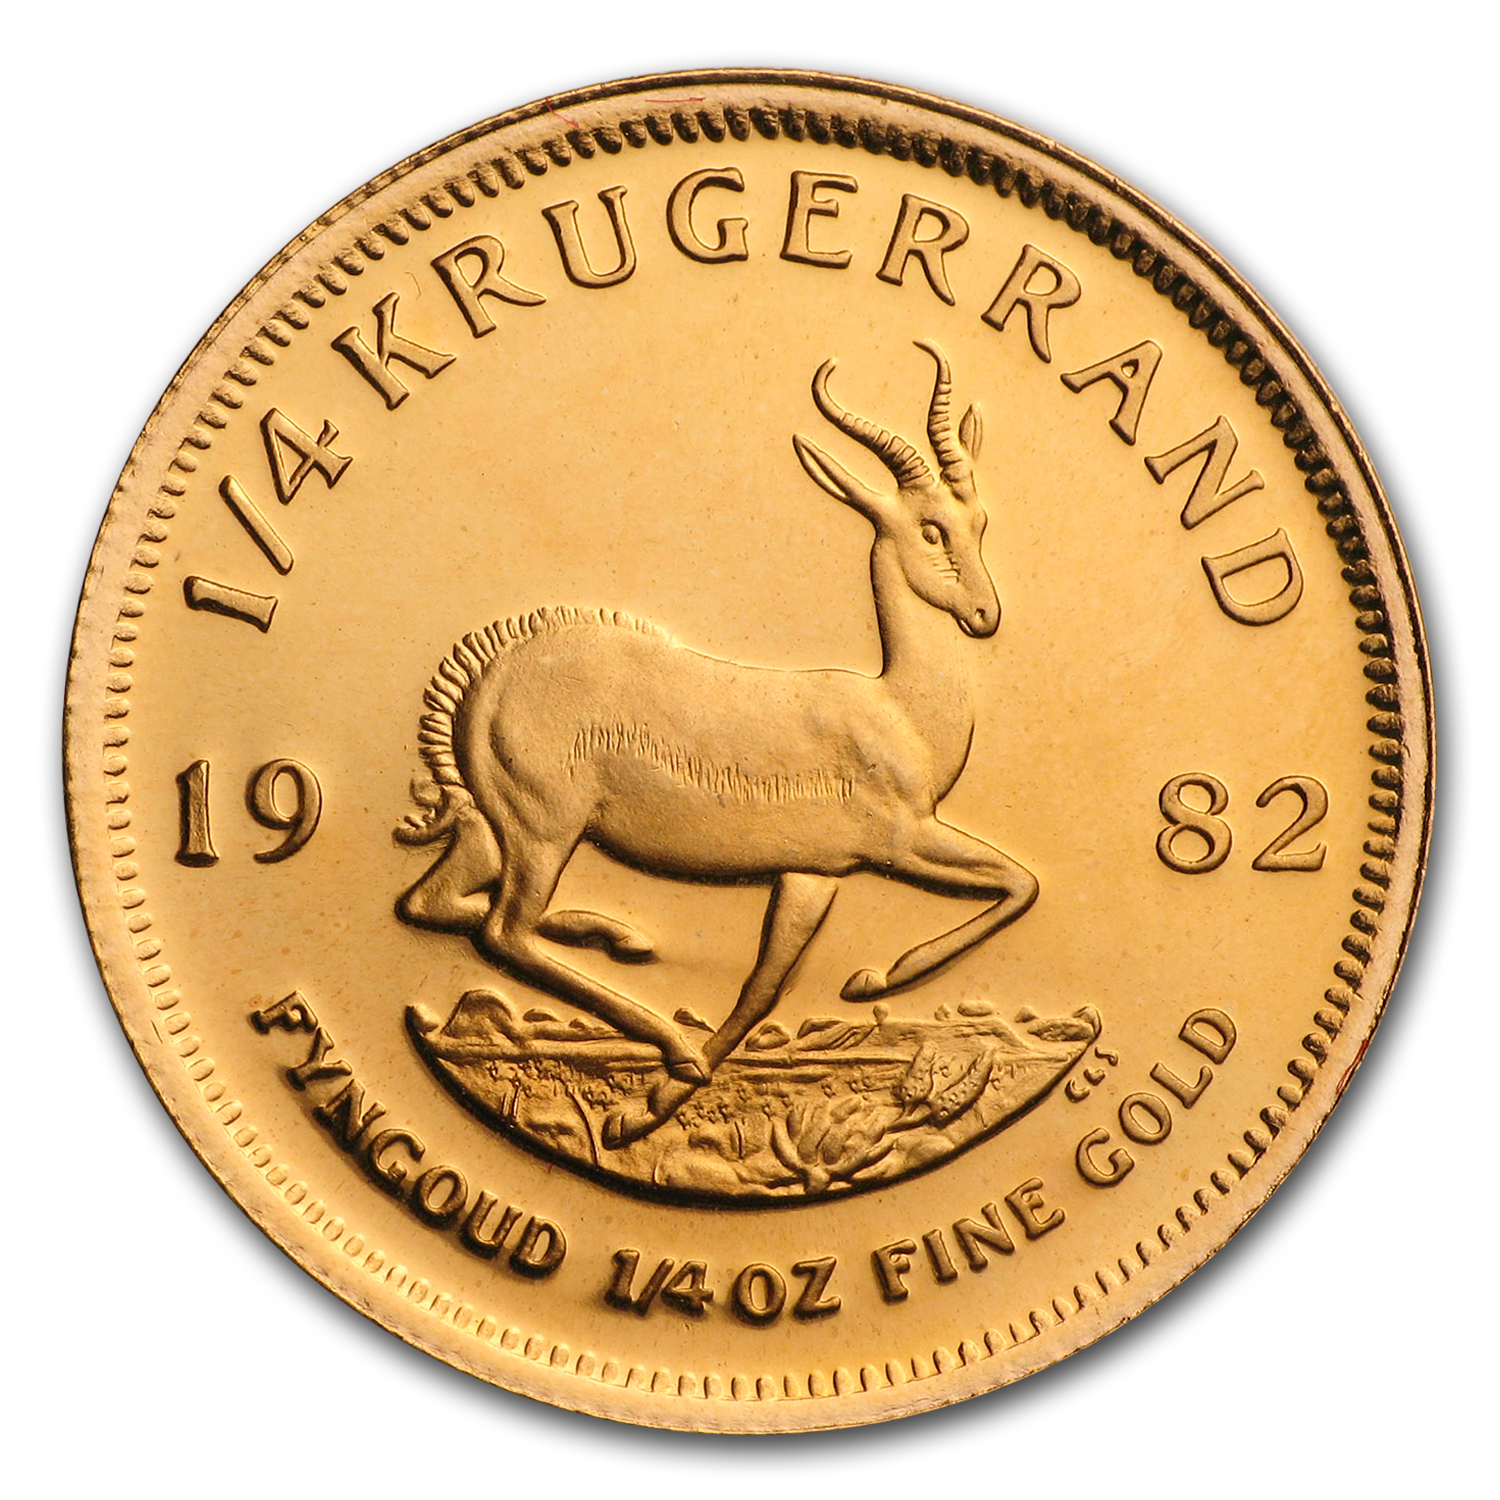 1982 South Africa 1/4 oz Proof Gold Krugerrand